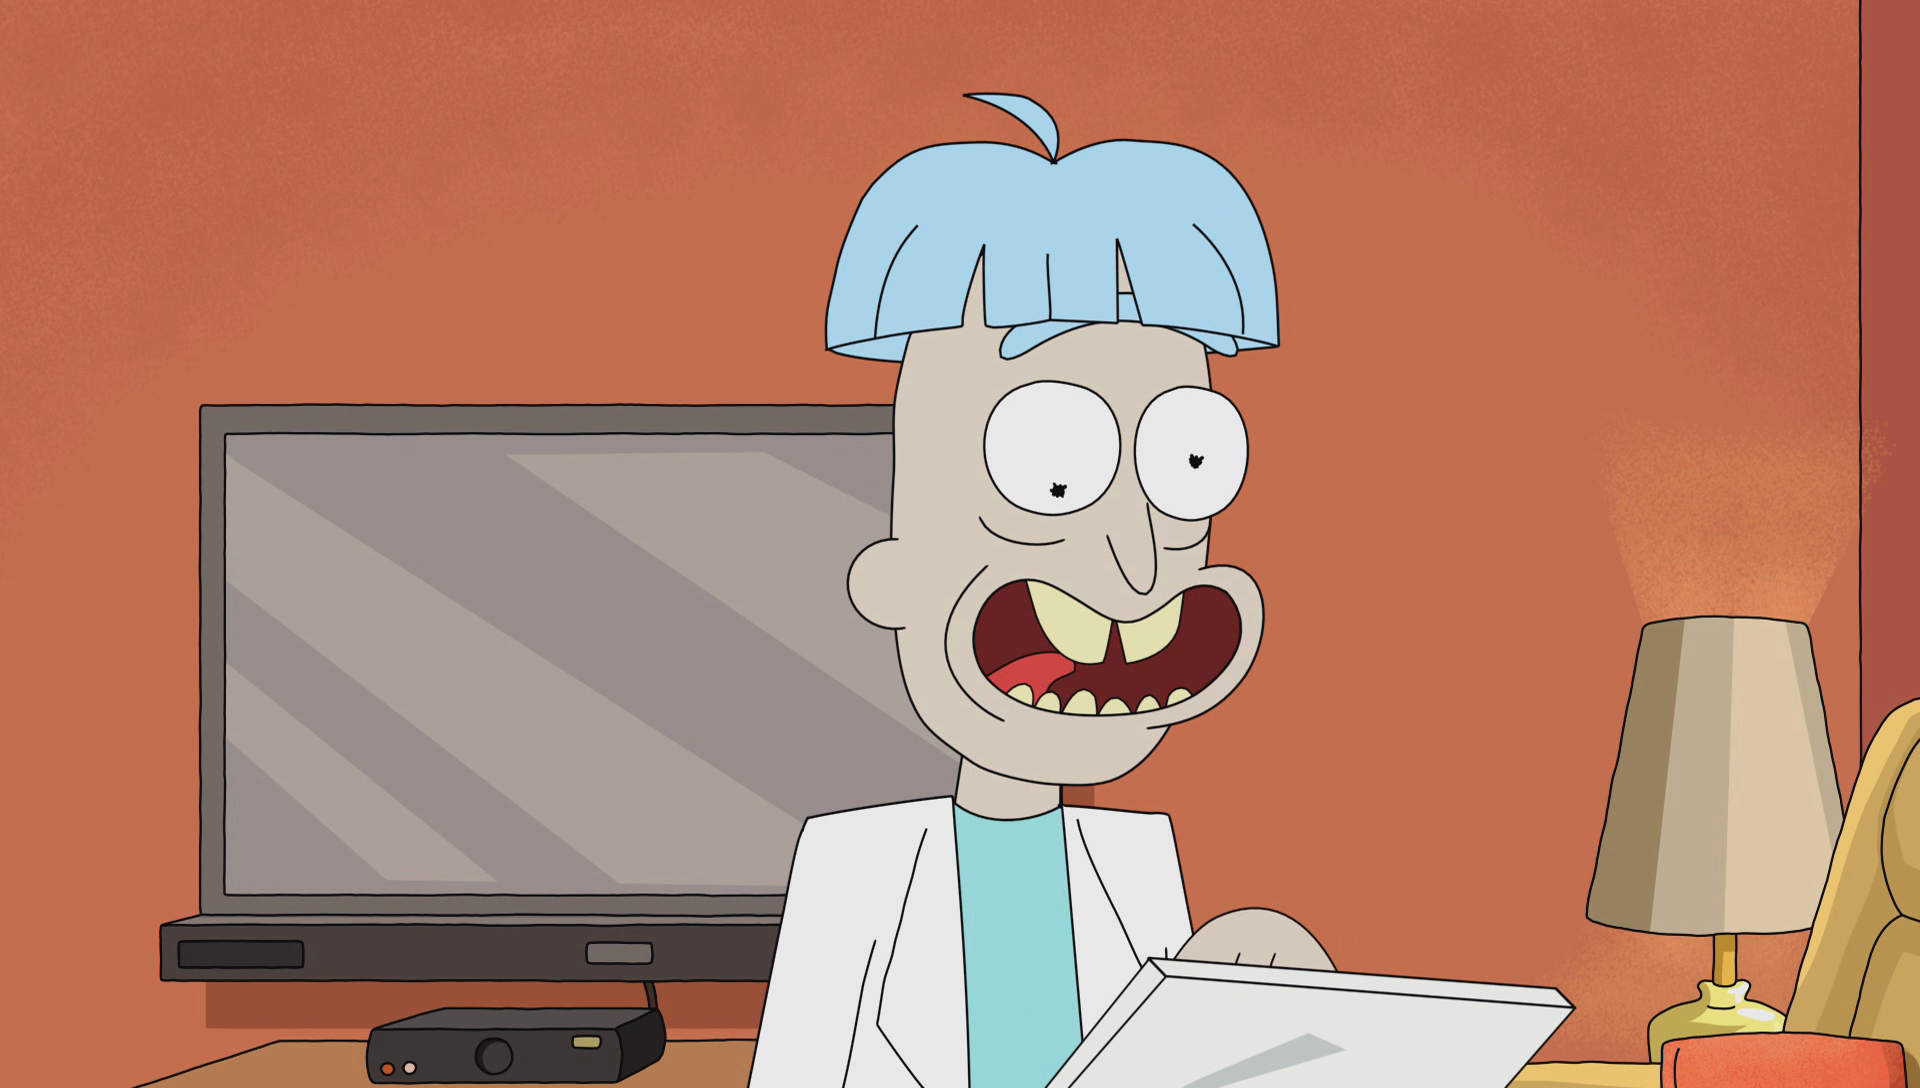 Best Rick And Morty Quotes Doofus Rick  Rick And Morty Wiki  Fandom Poweredwikia